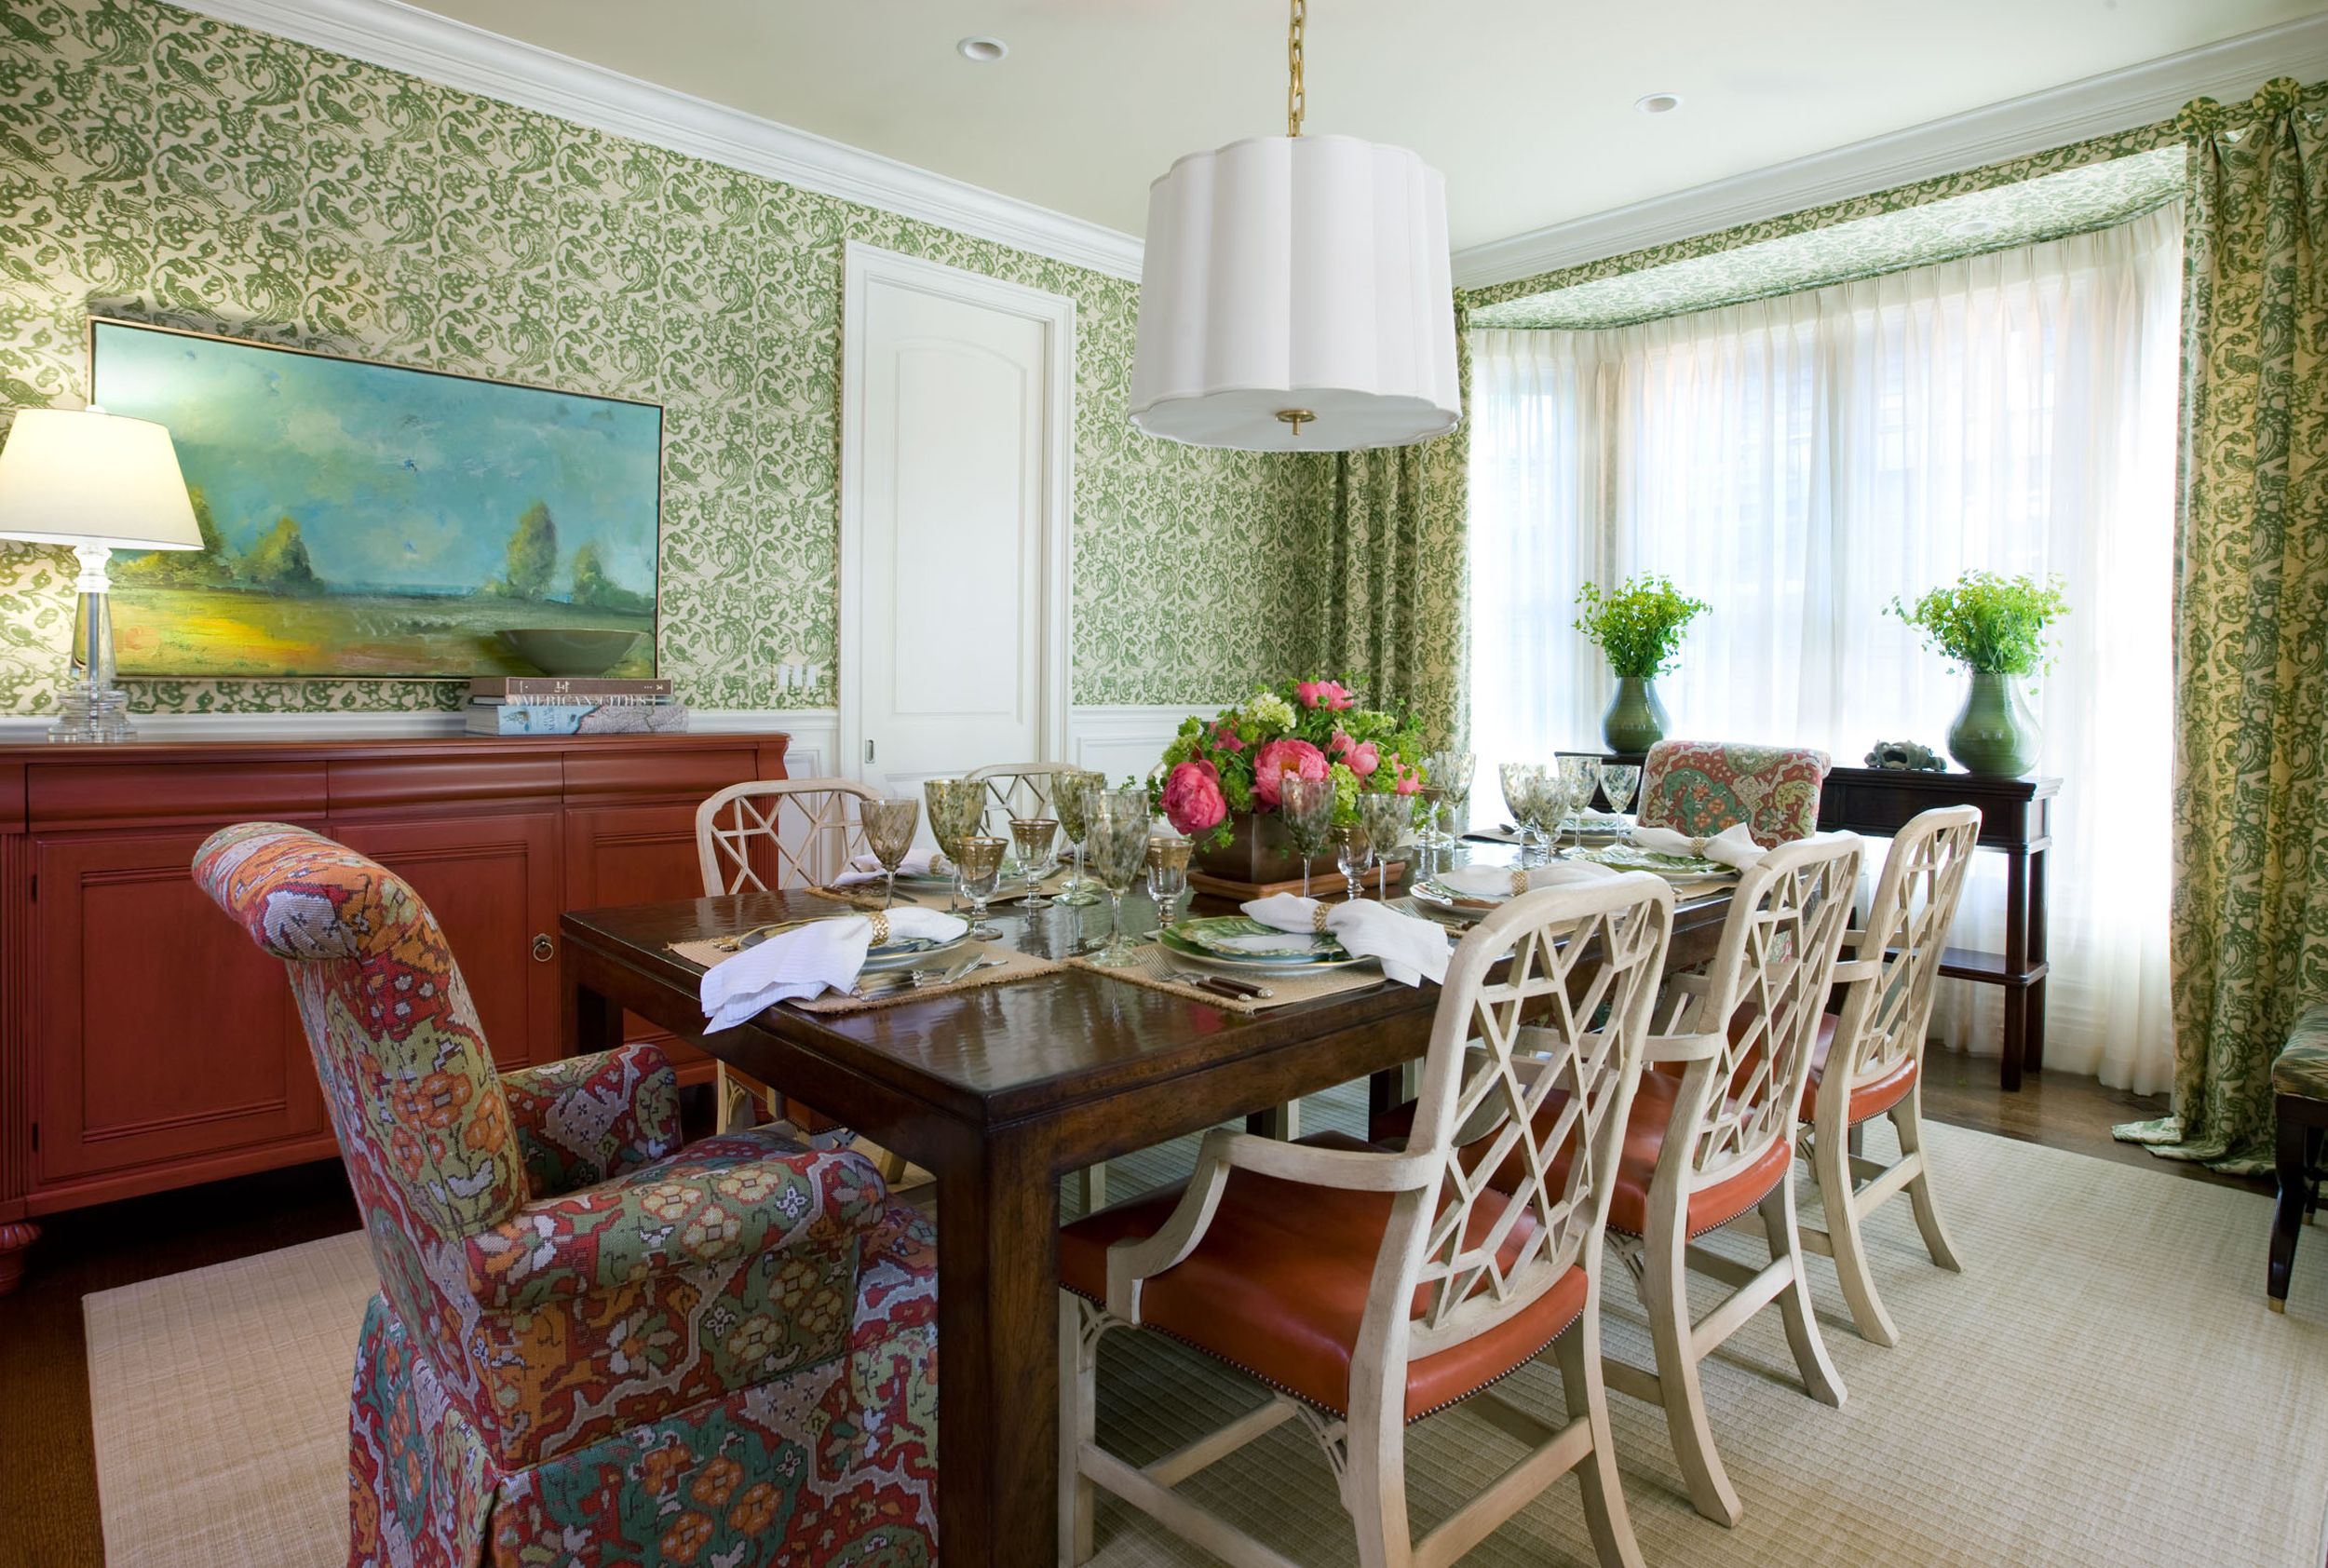 austin-house-dining-room-2-interior-design.jpg